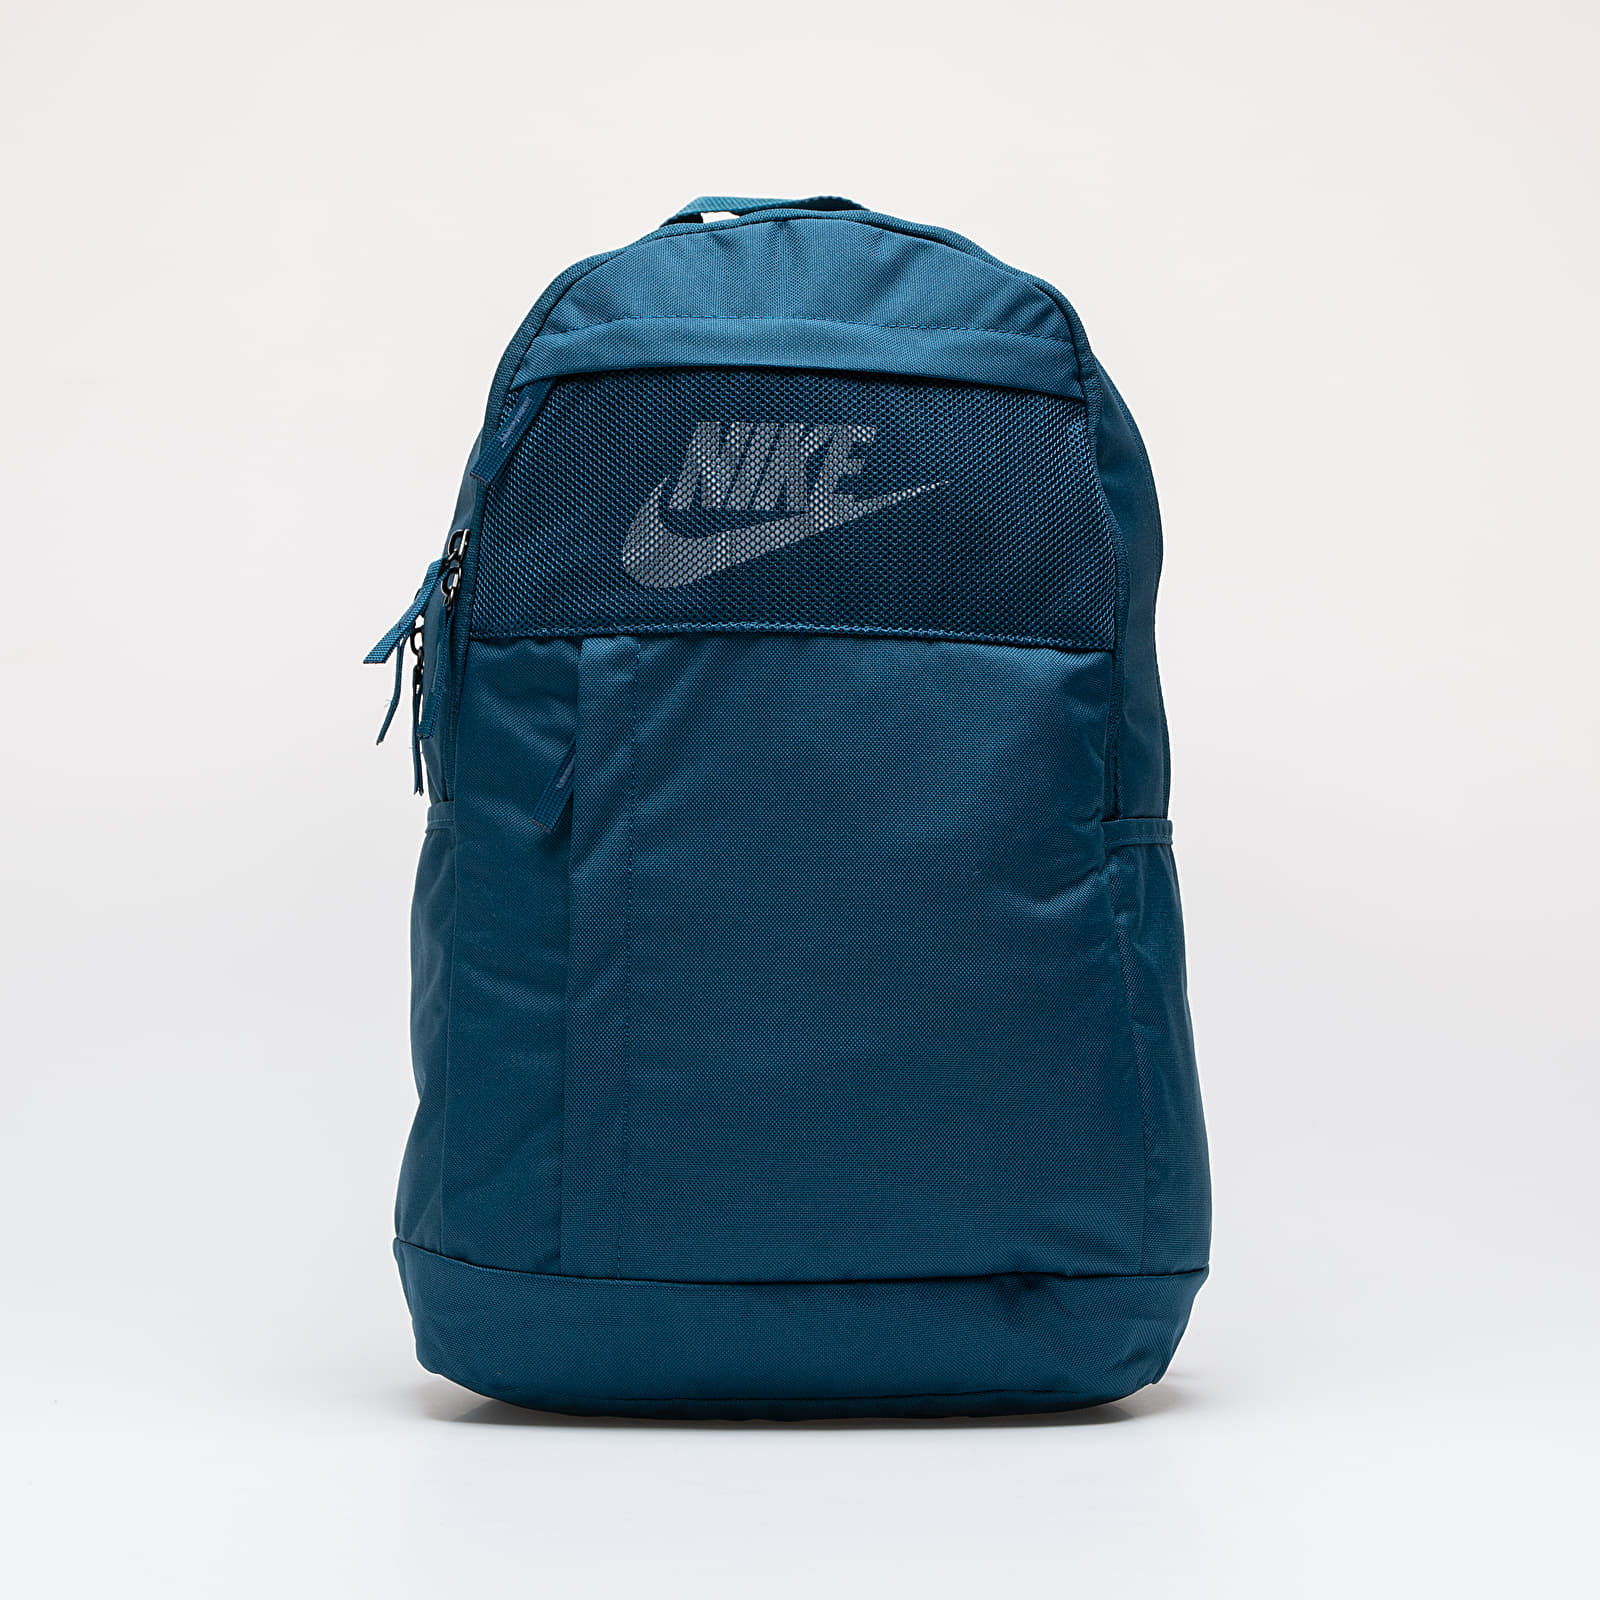 Nike Elemental Backpack - 2.0 Lbr